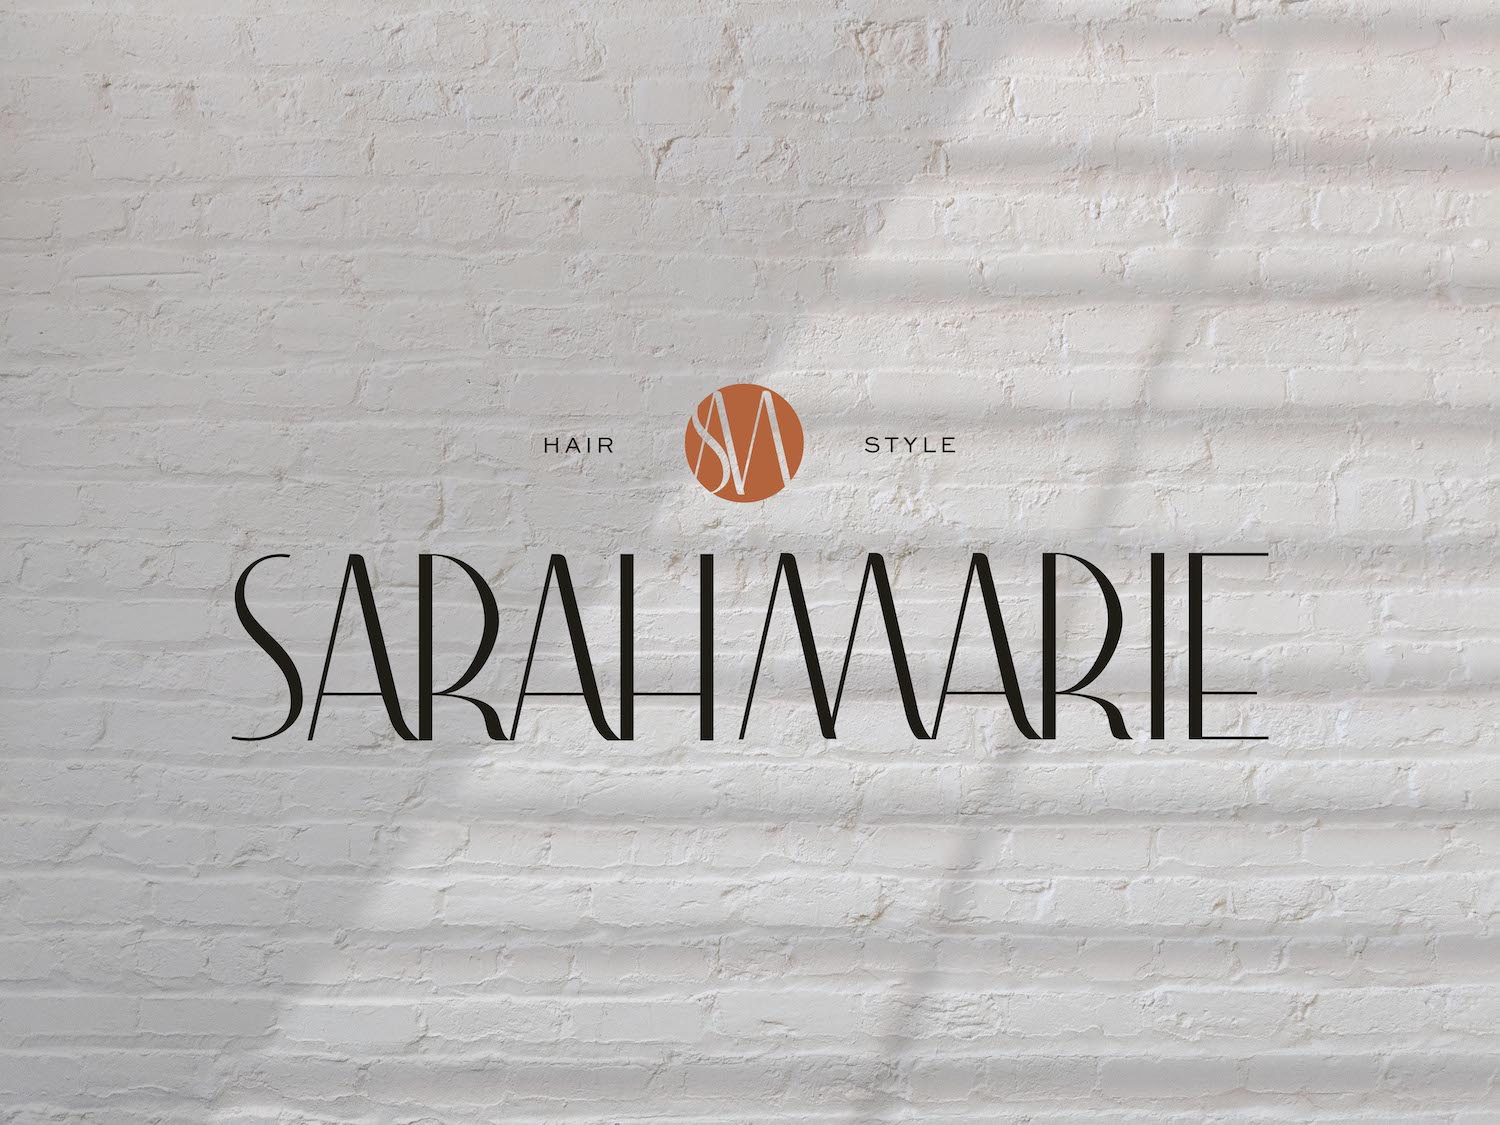 Sarah Marie Custom Brand Design | Witt and Company